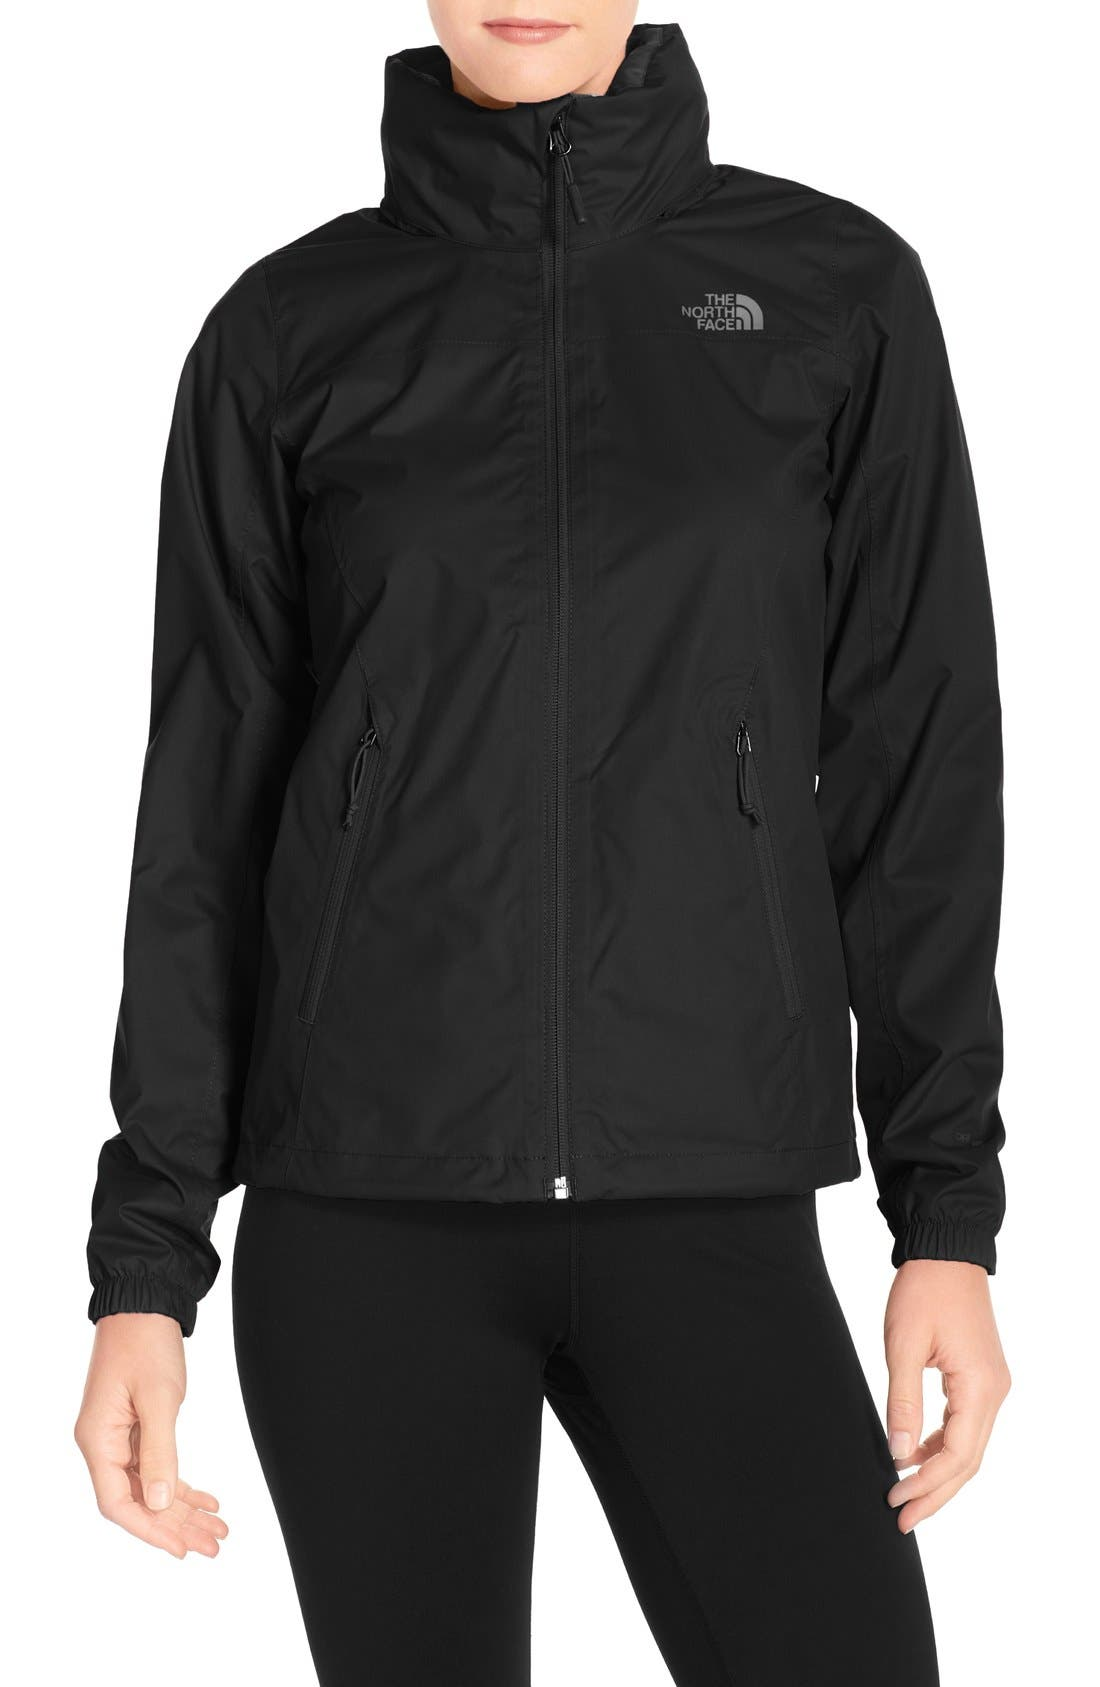 Alternate Image 1 Selected - The North Face 'Resolve Plus' Waterproof Jacket